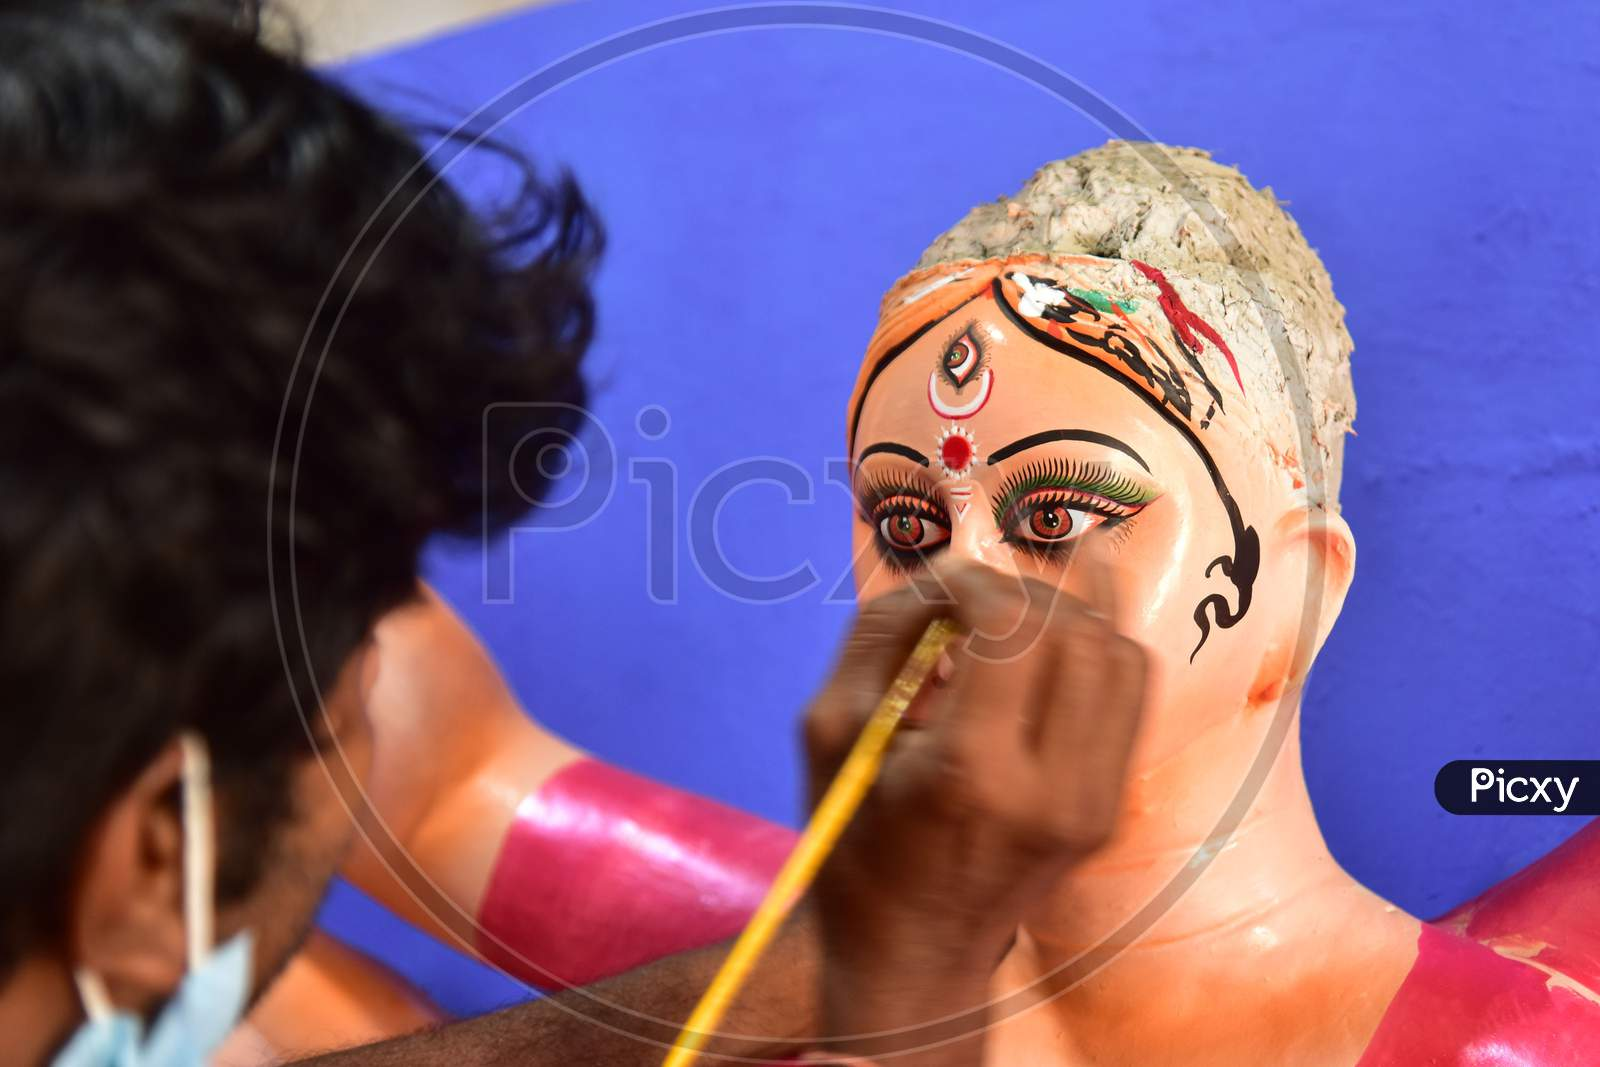 An artist gives final touches to an idol of Goddess Durga ahead of Durga Puja festival, in Guwahati, on Oct 16,2020